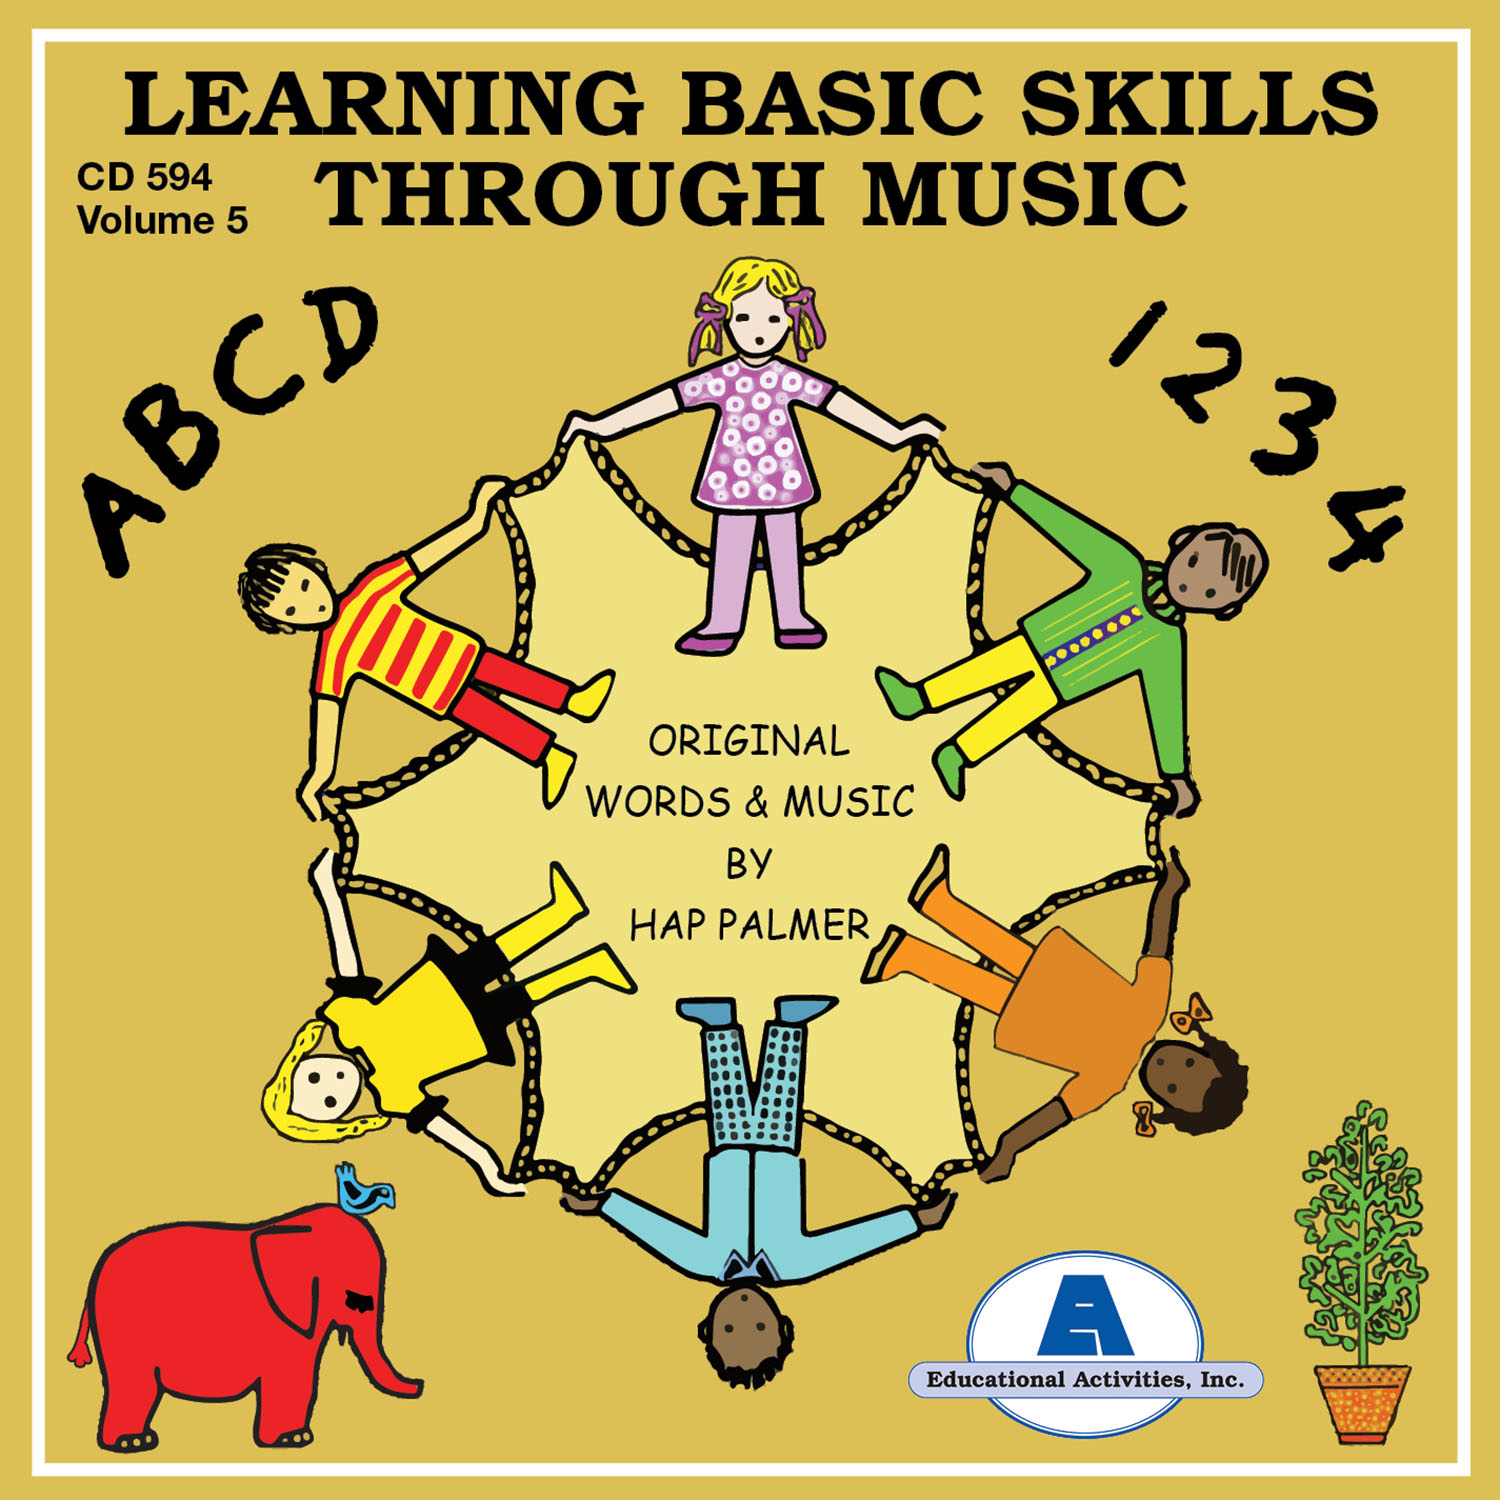 Learning Basic Skills Through Music Volume 5